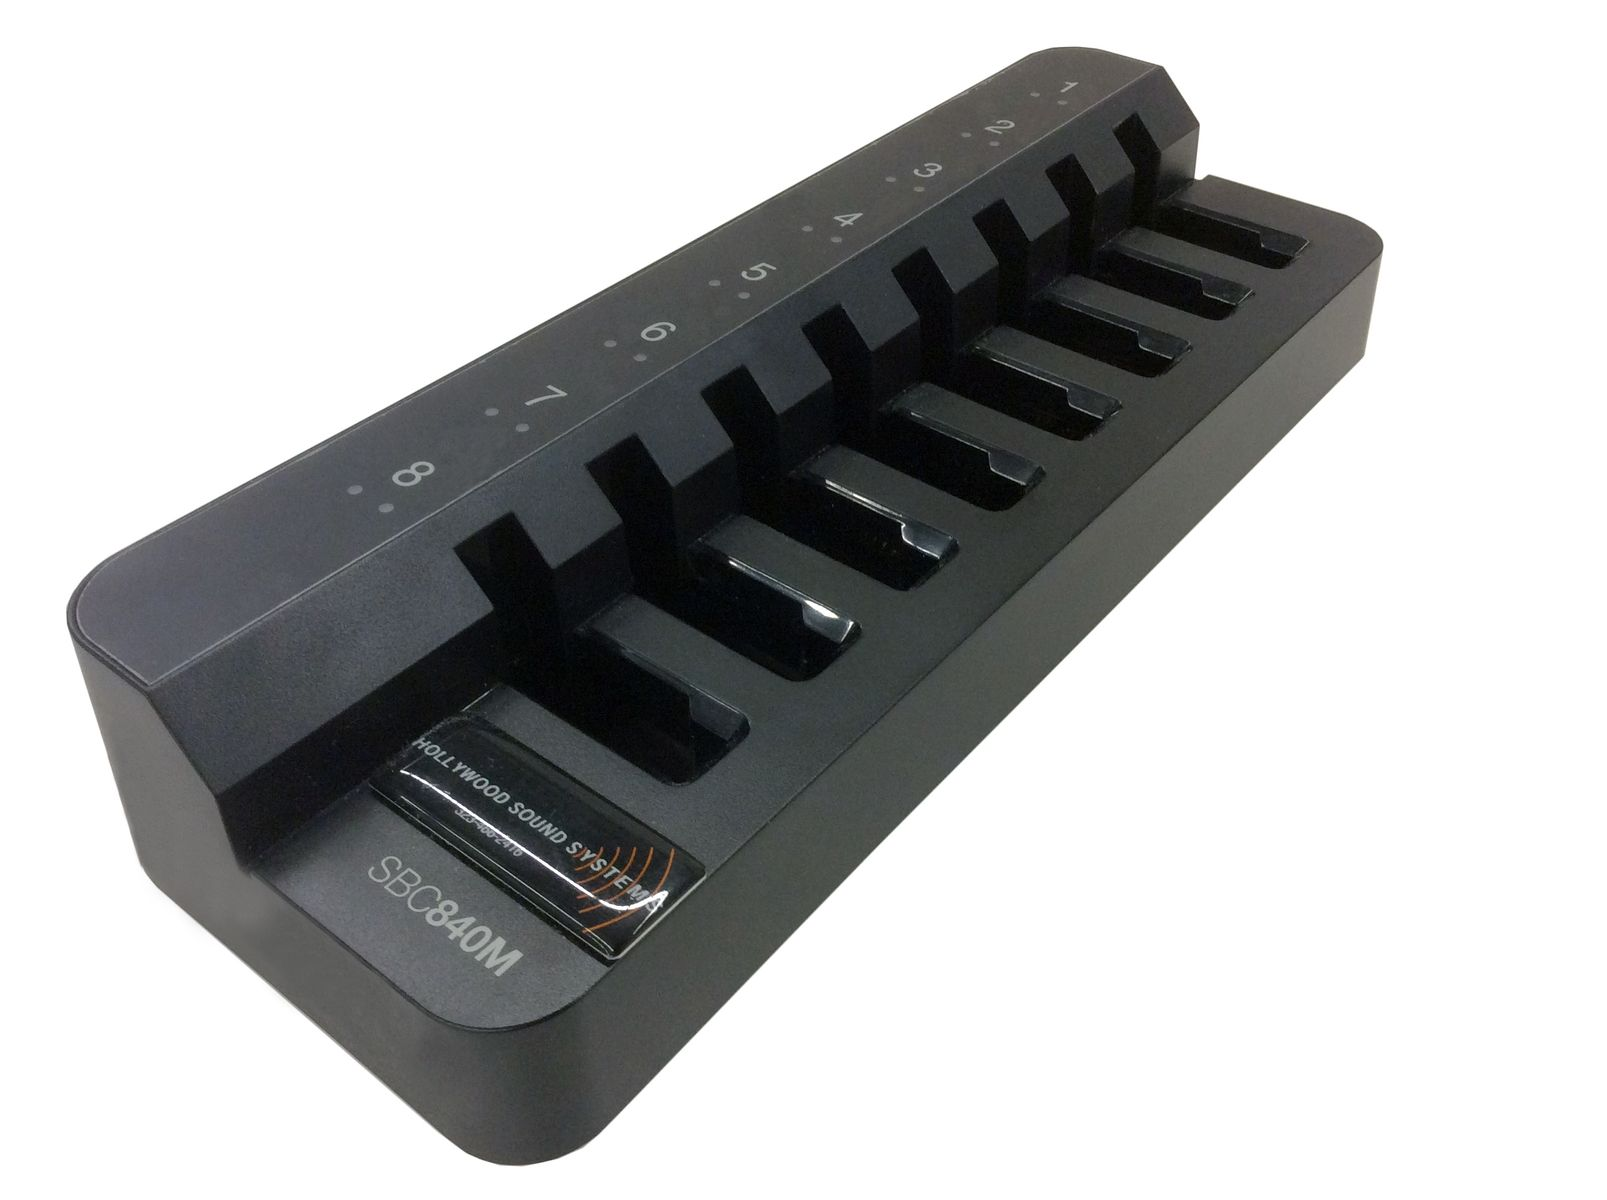 Shure SBC840M Networked Battery Charger at Hollywood Sound Systems